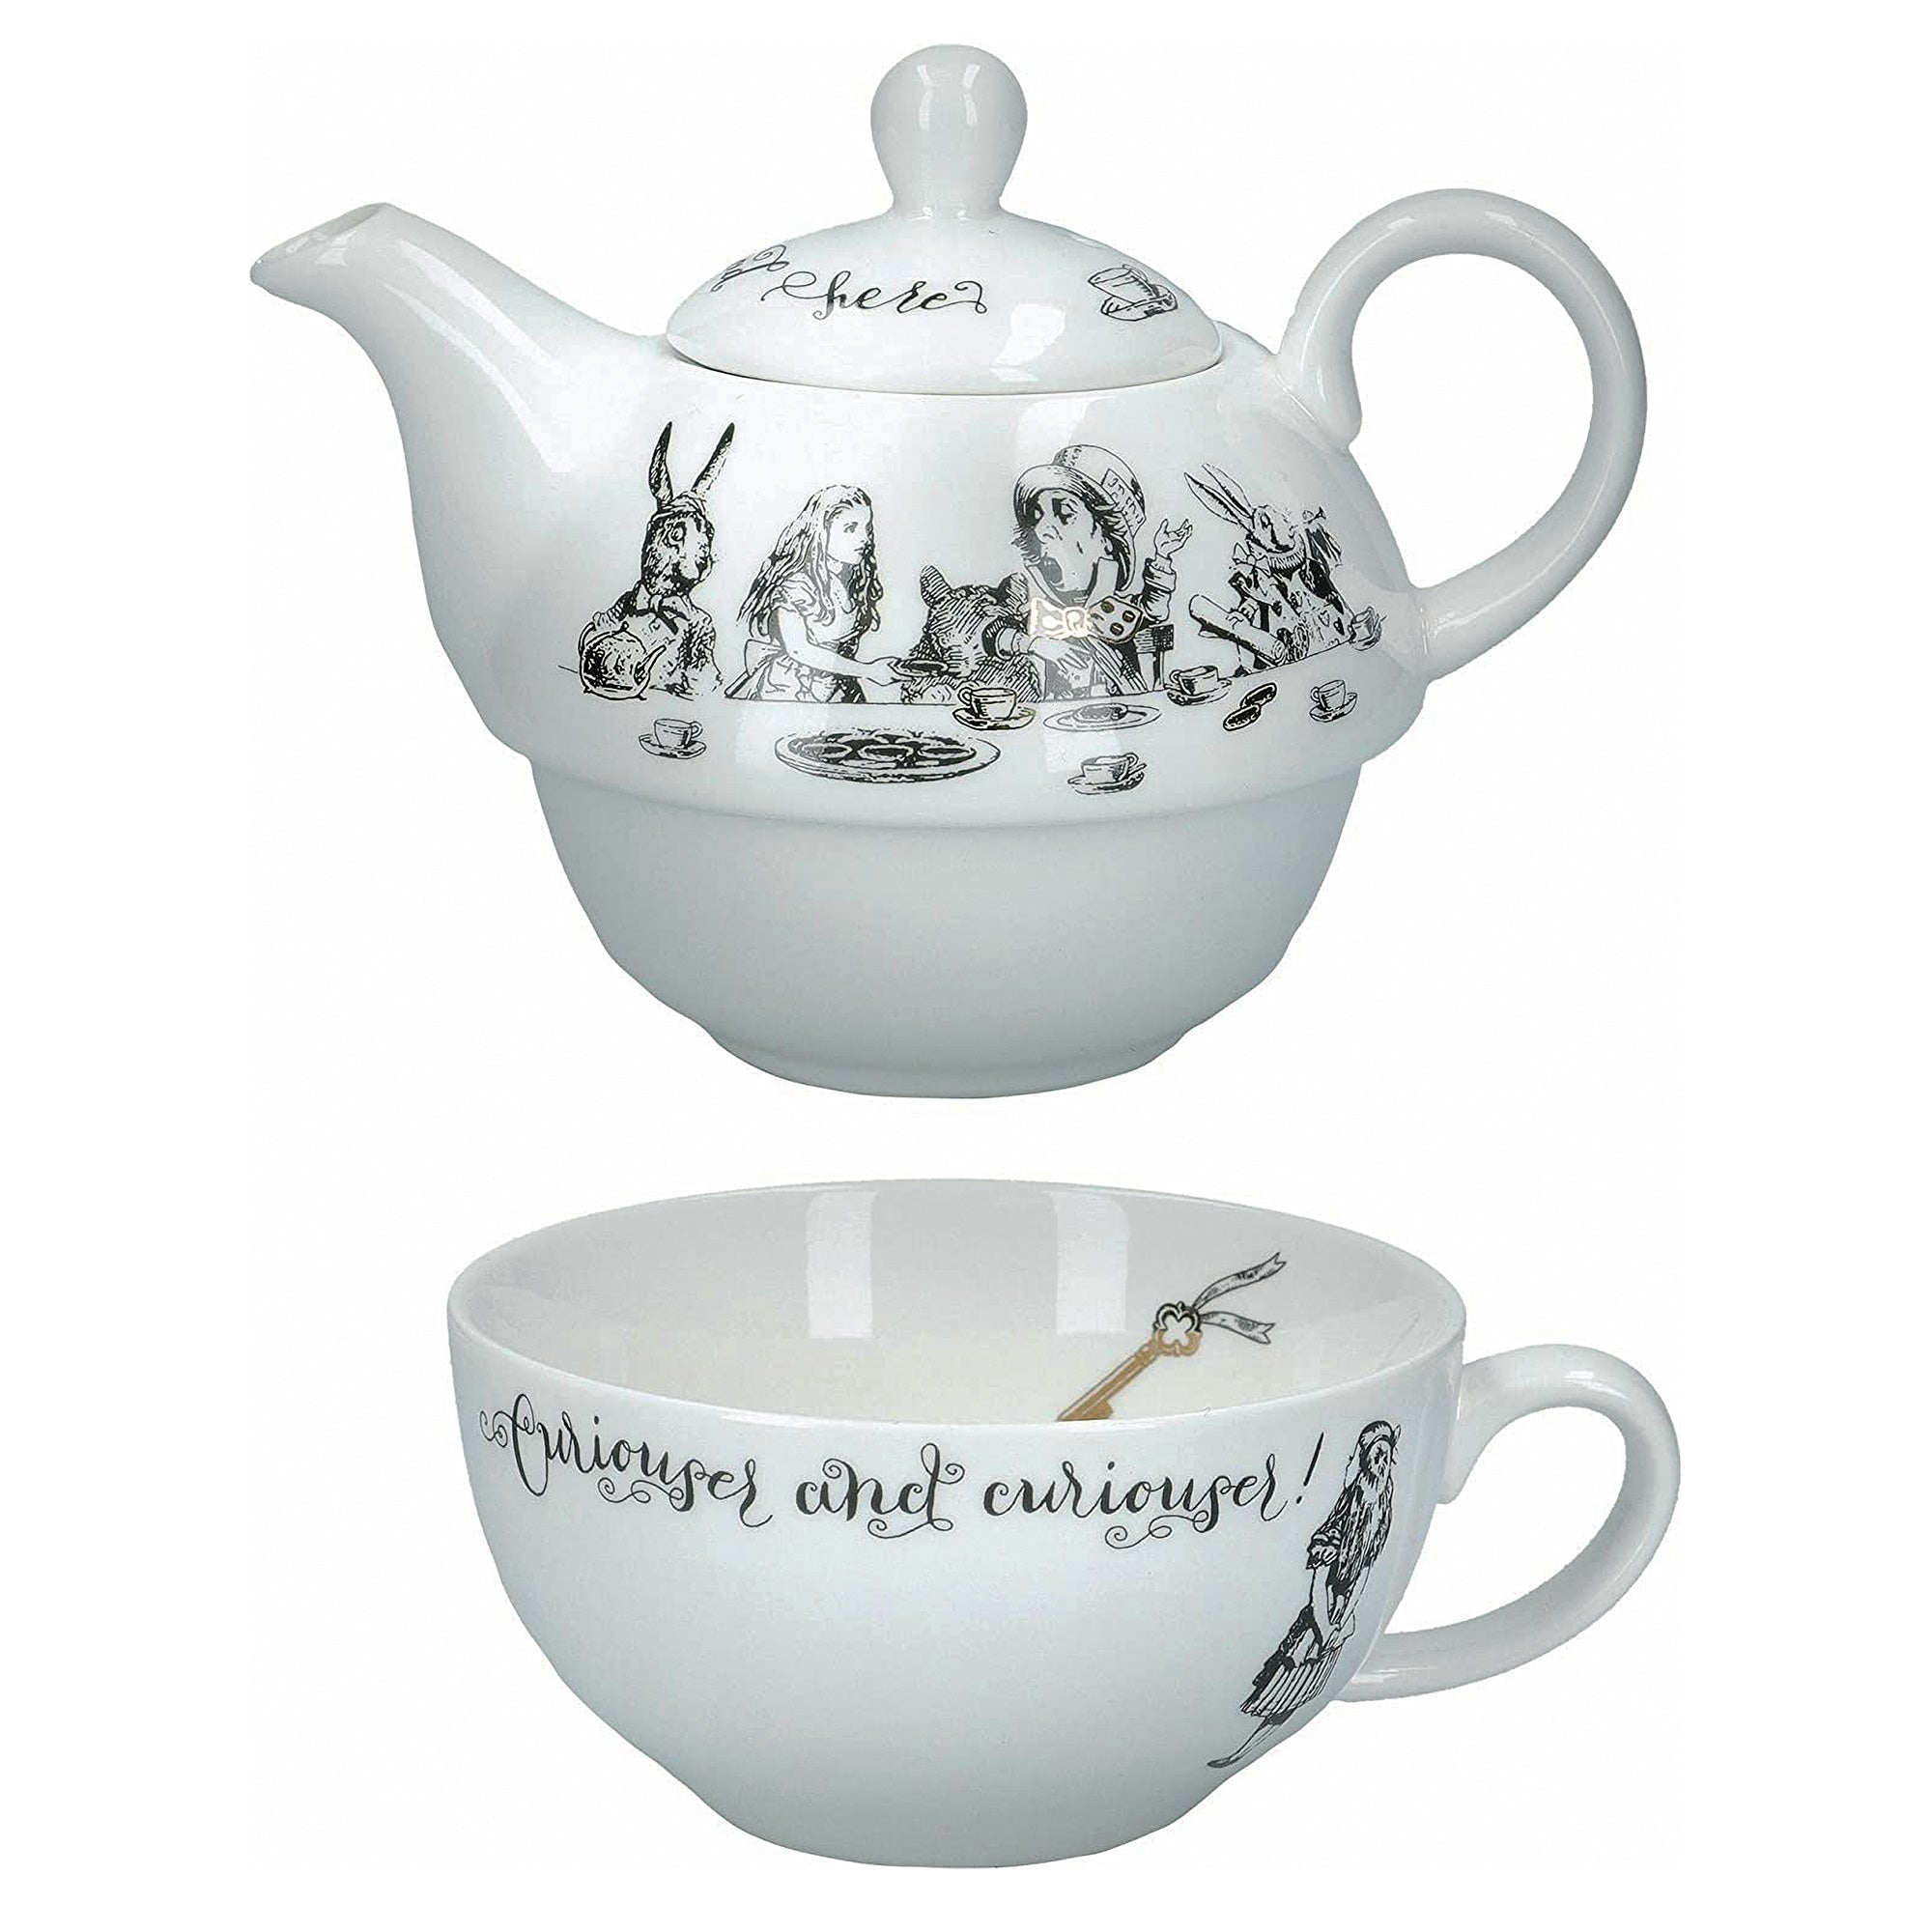 Alice in Wonderland Tea For One Teapot & Cup Set